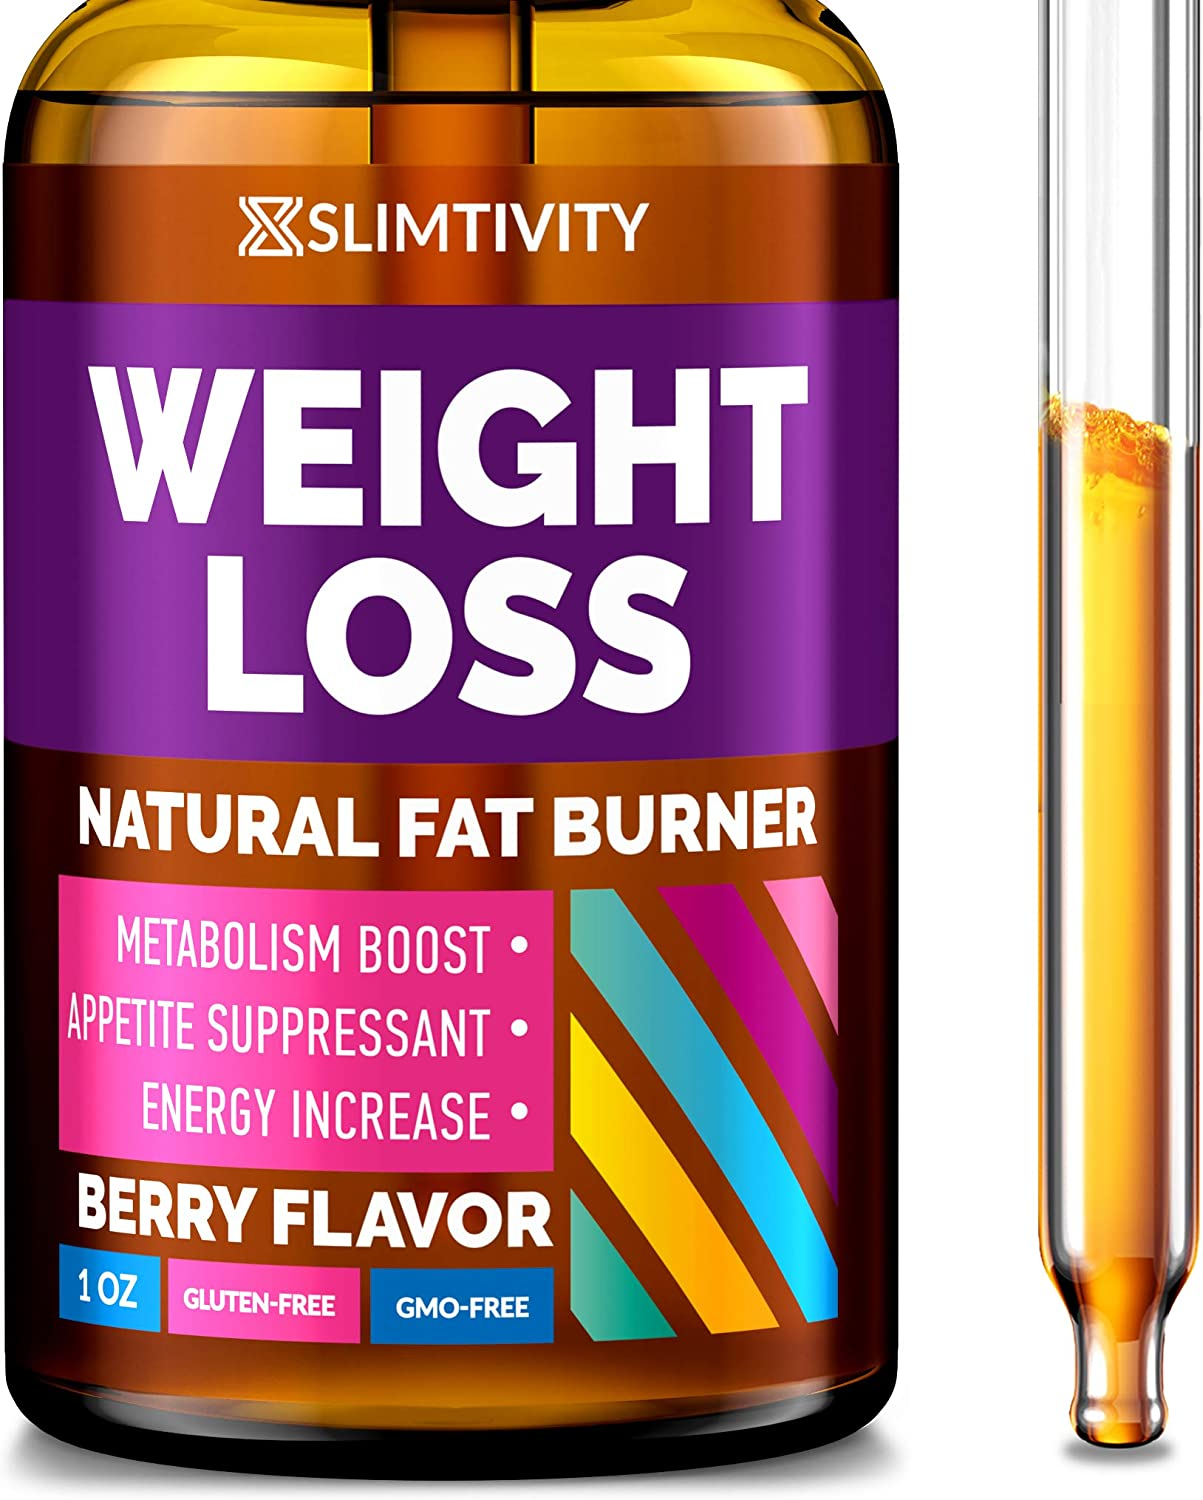 Diet Drops for Appetite Suppression - Weight Loss Drops for Adults - Appetite Suppressant for Fast Weight Loss - Advanced Metabolism Booster - Hunger Suppressant for Fat Burn: Health & Personal Care